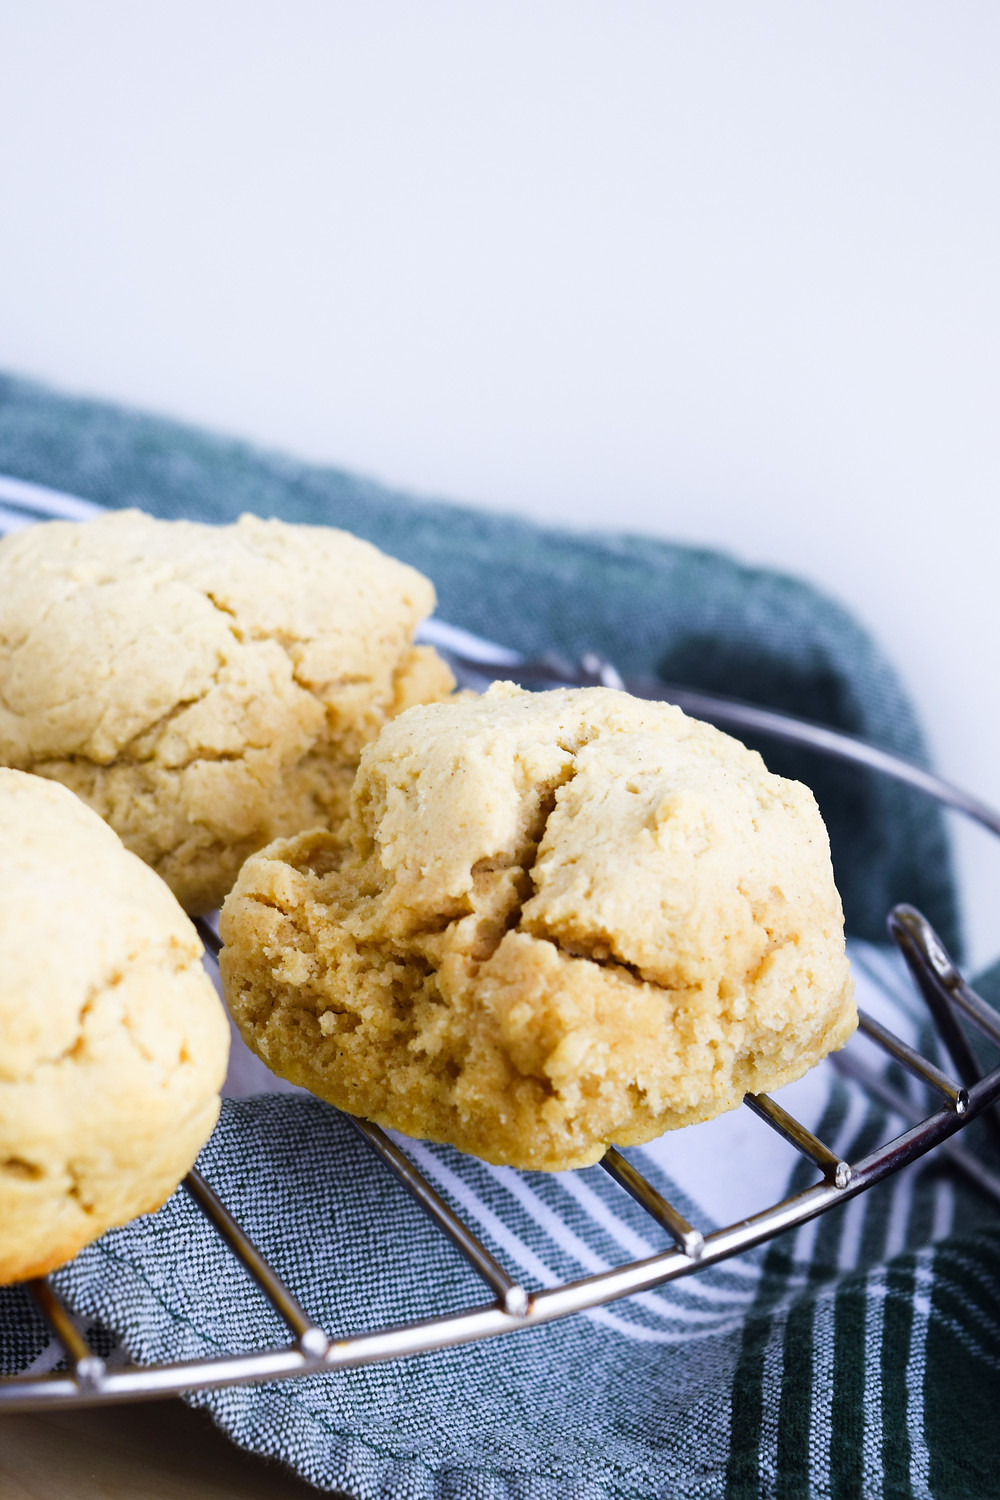 Easy Gluten-Free Drop Biscuits